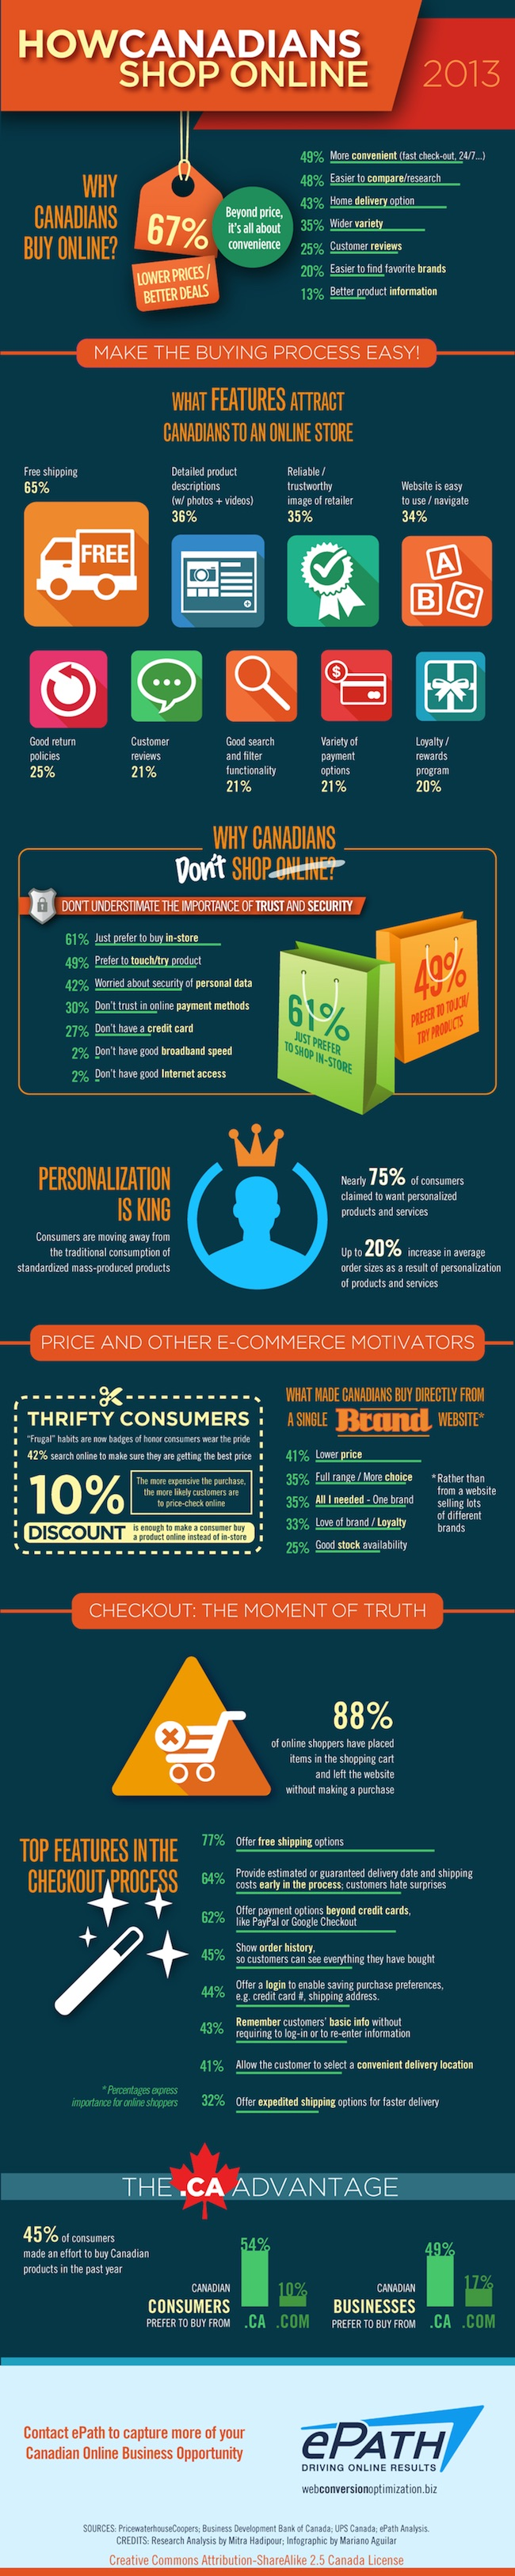 HOW_CANADIANS_SHOP_ONLINE | Infographic | ePath eCommerce Consultants